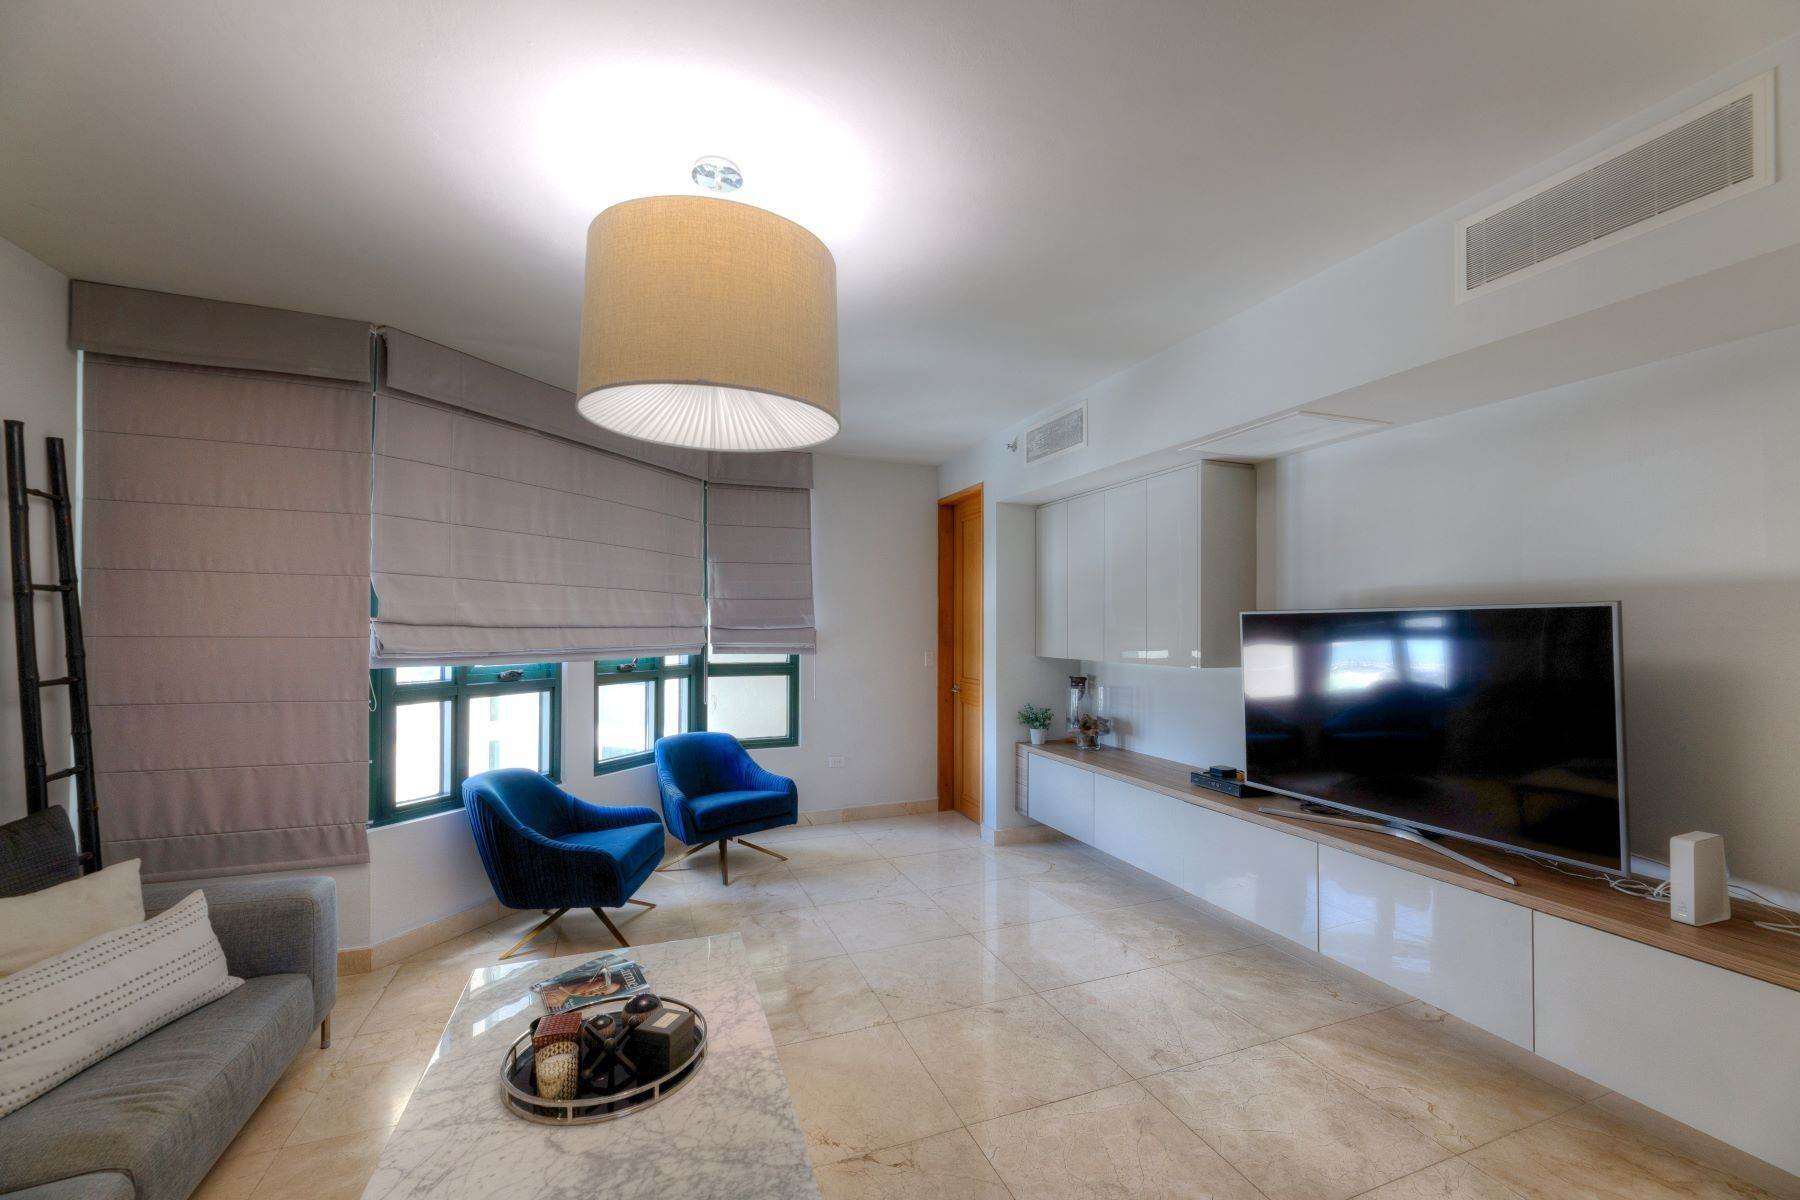 7. Condominiums for Sale at Exquisite Modern Residence in Caribe Plaza 35 Munoz Rivera Ave., Apt. 1202 San Juan, 00907 Puerto Rico